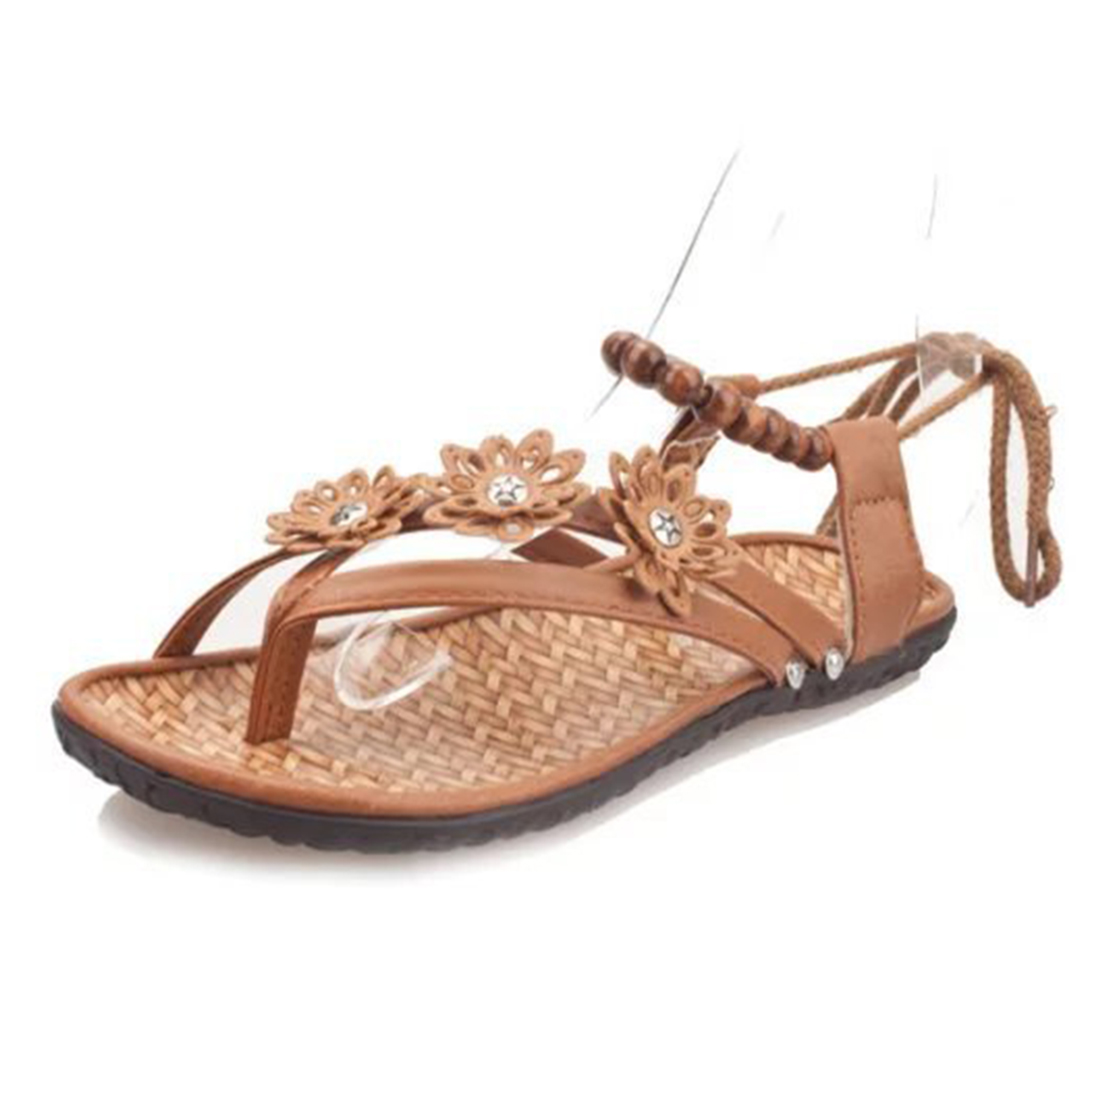 Womens sandals new look - Brand Shoes Woman 2017 New Look Gladiator Sandals Summer Flat Sandals Boots Women Shoes Gift Beading